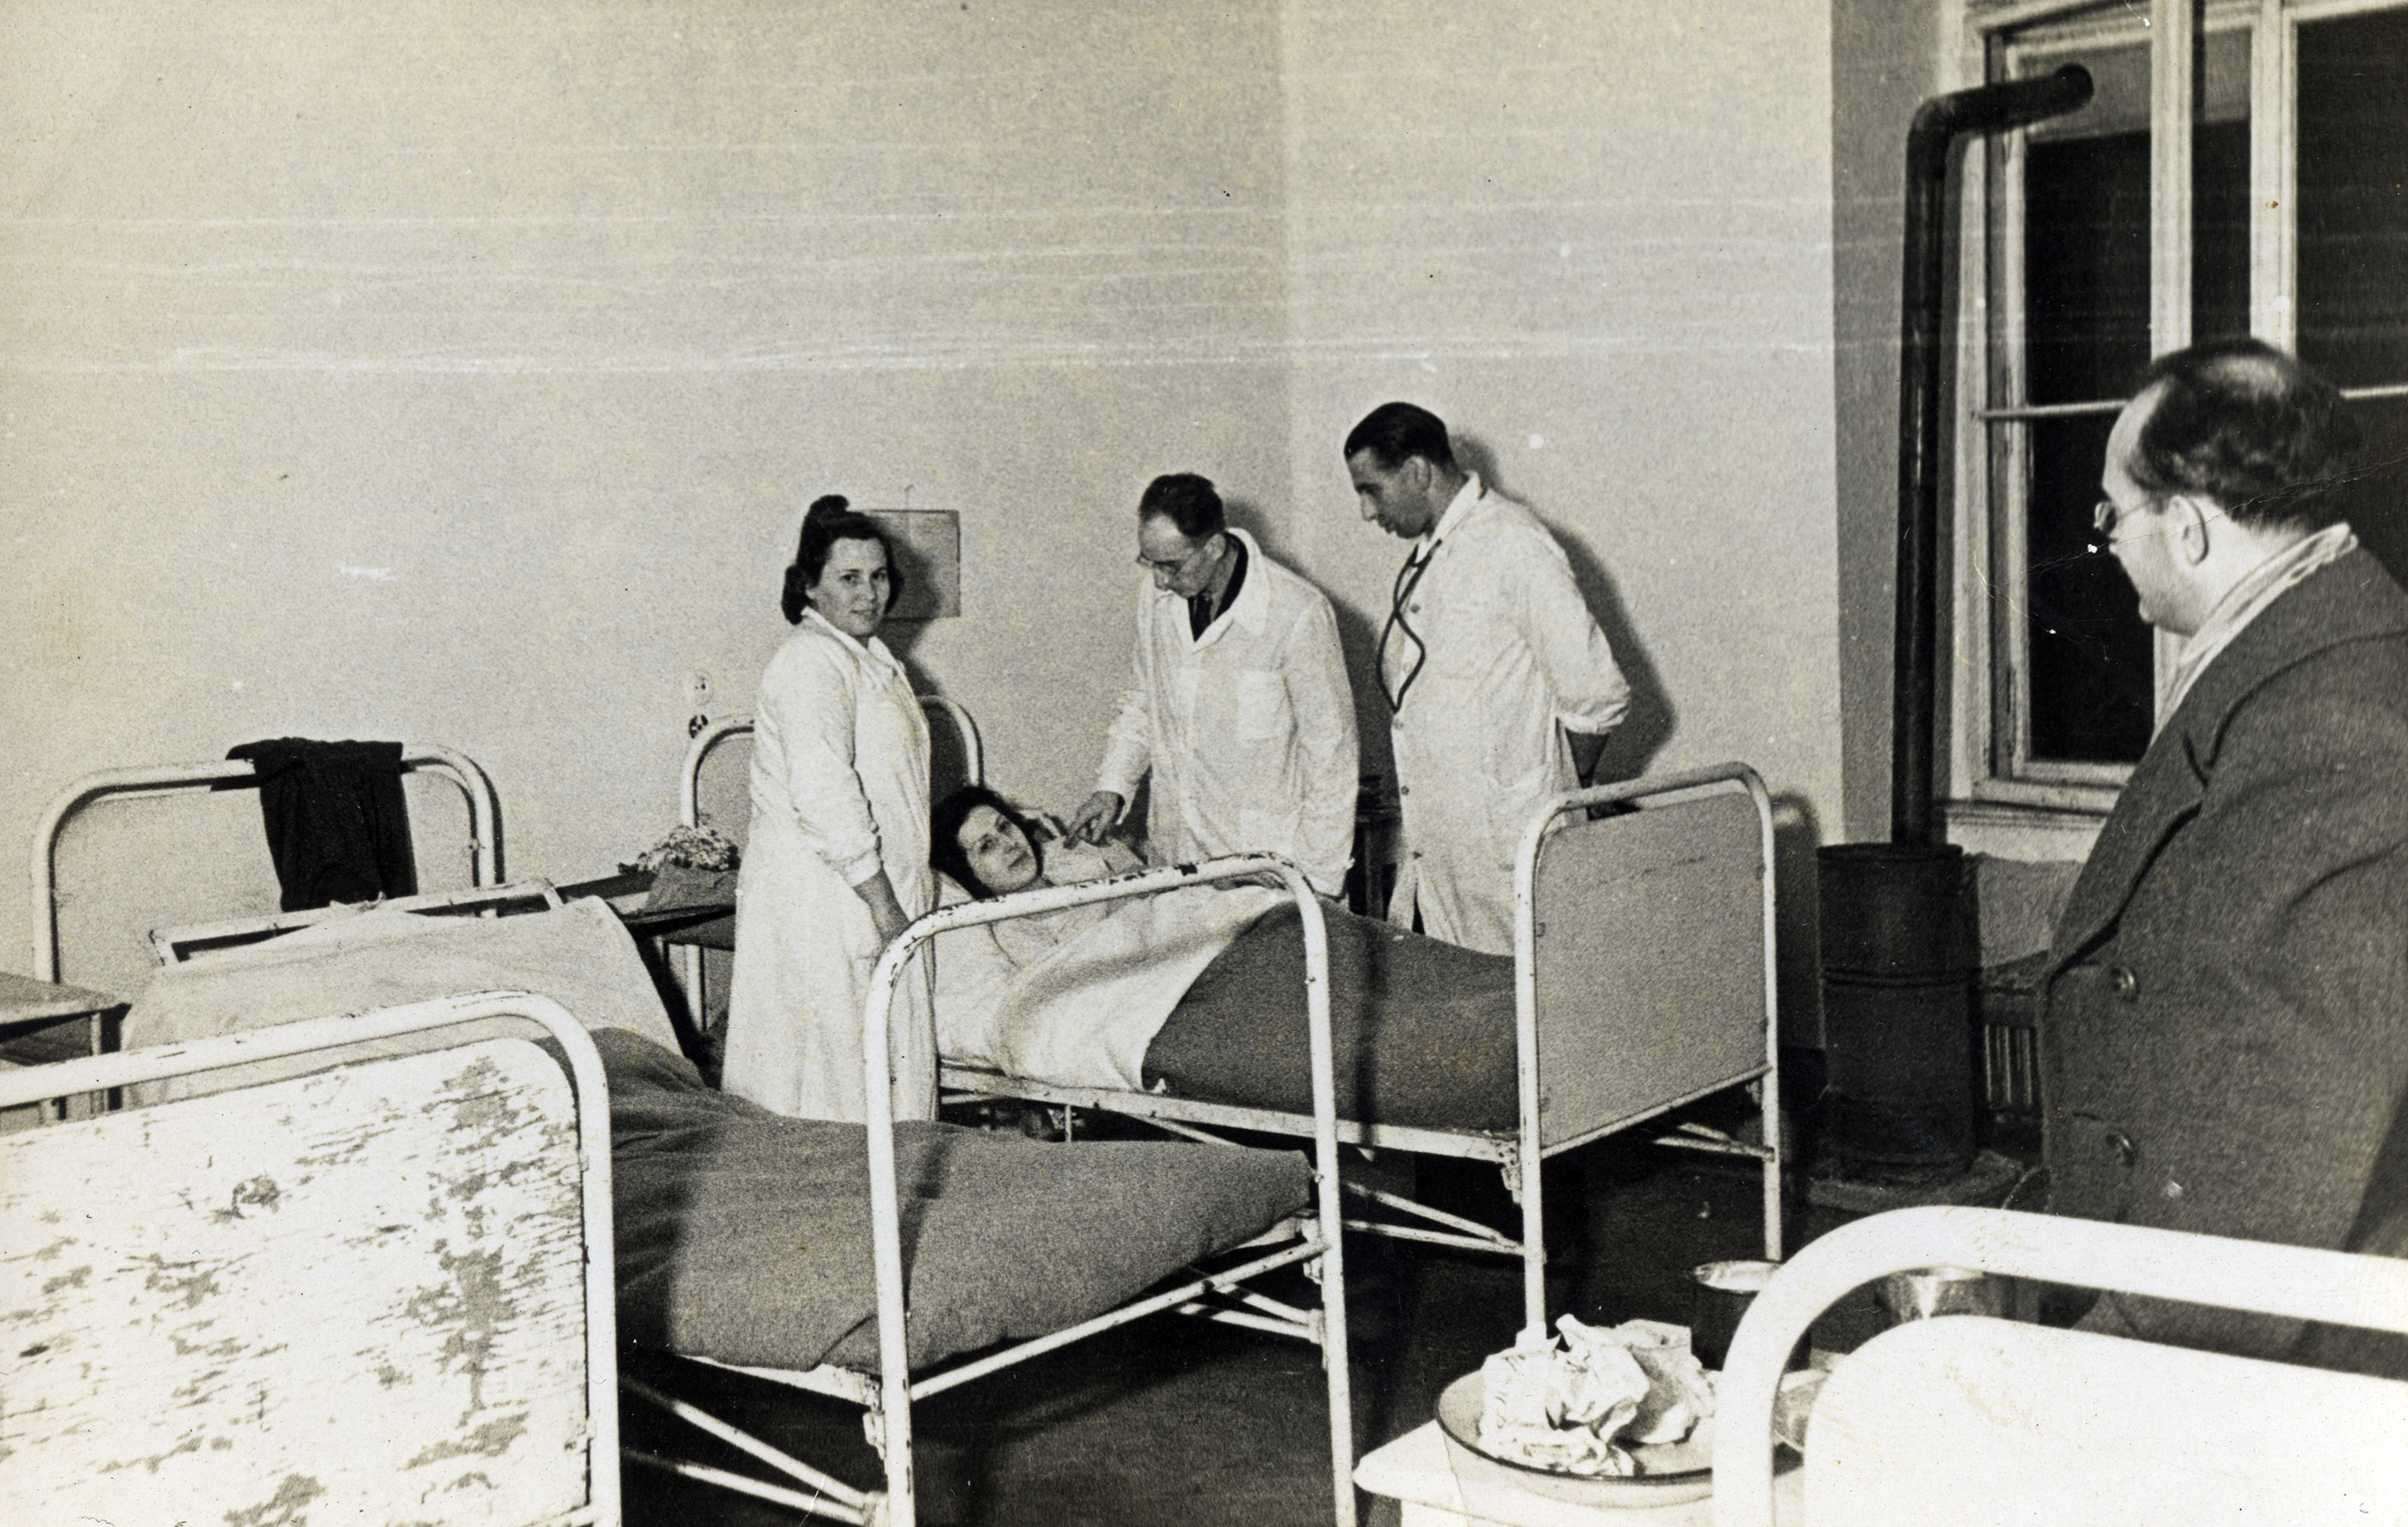 Medical personnel tend to a patient  at the Rothschild Hospital in Vienna.    Among those pictured is Dr. Georg Kollman (standing by the bed, on the right).